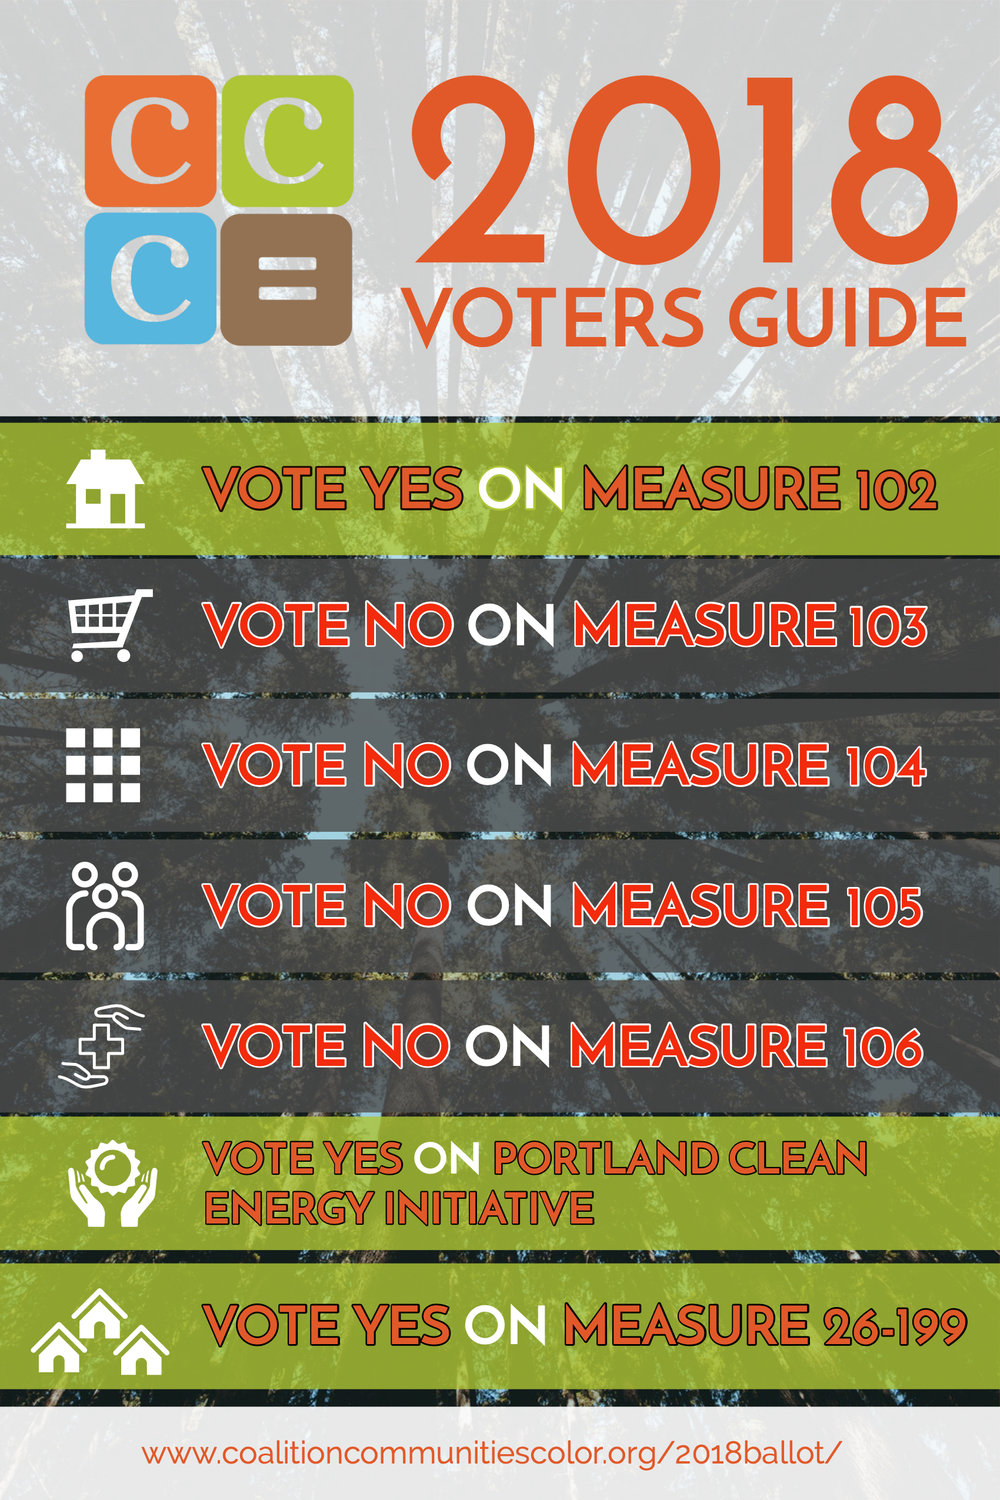 CCC Voting Guide.jpg